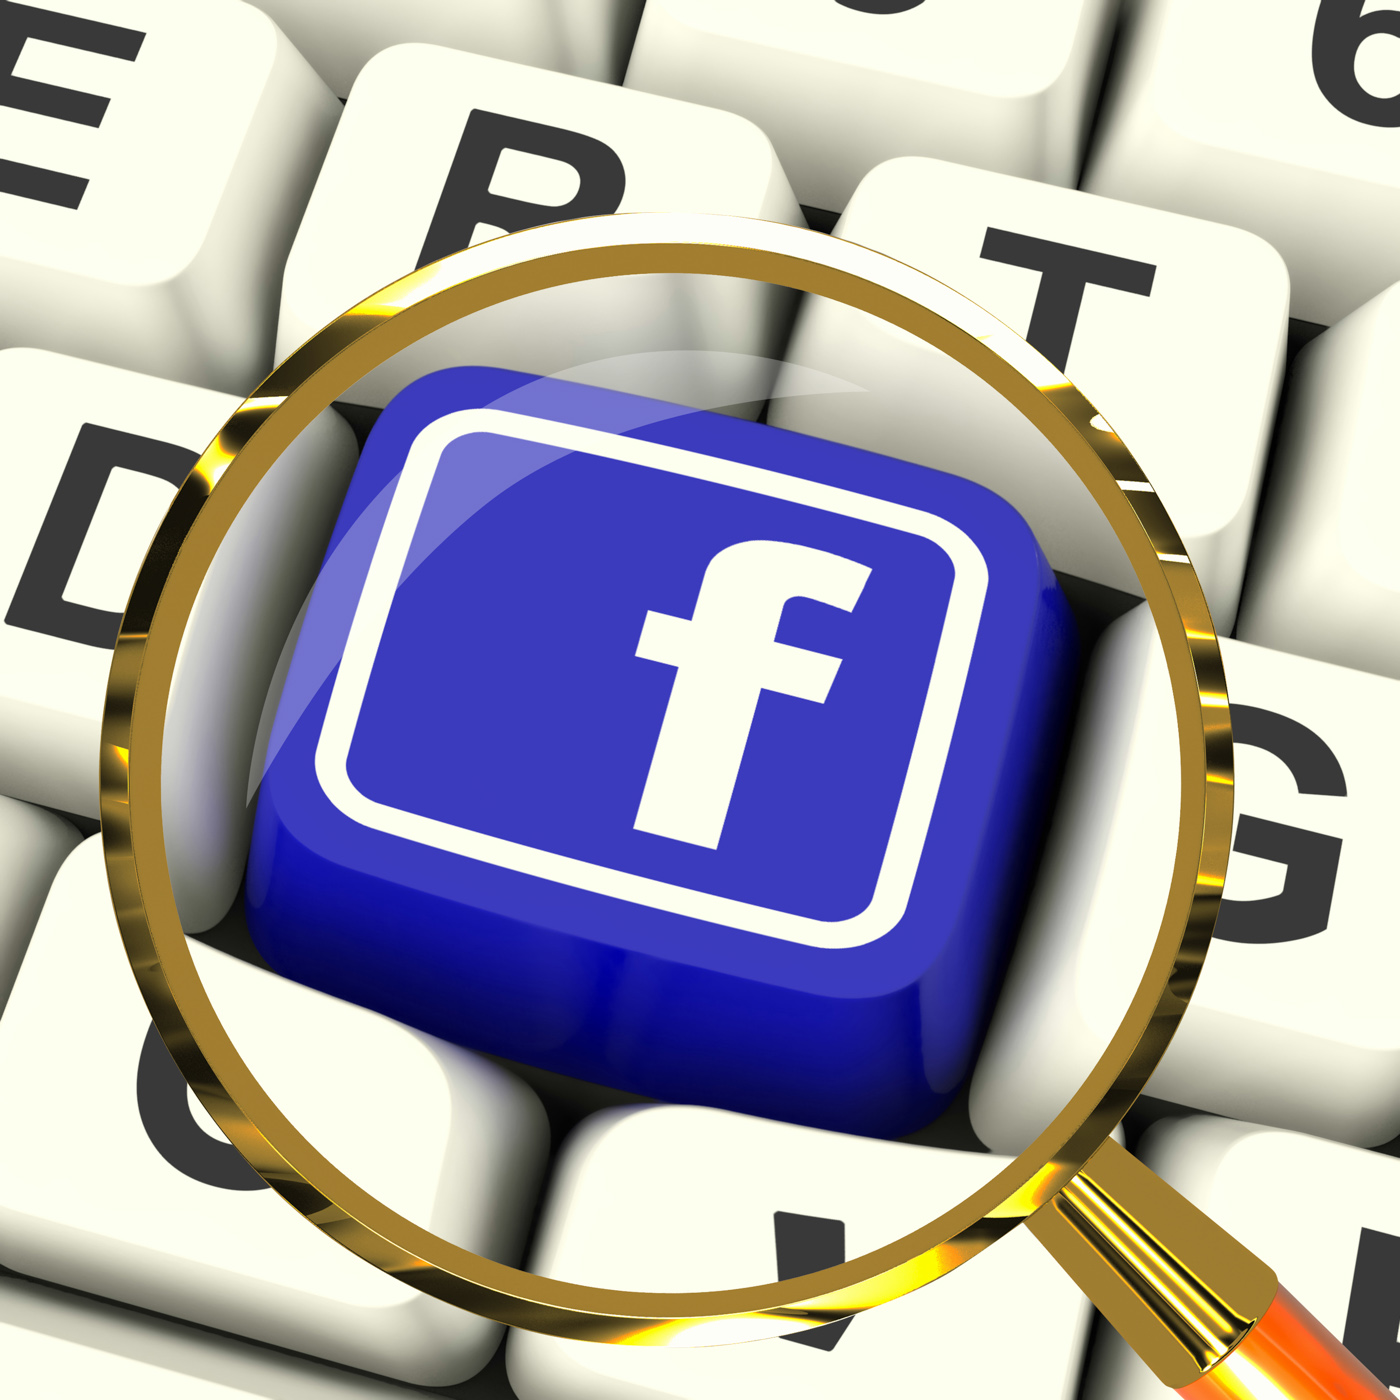 Facebook key magnified means connect to face book photo